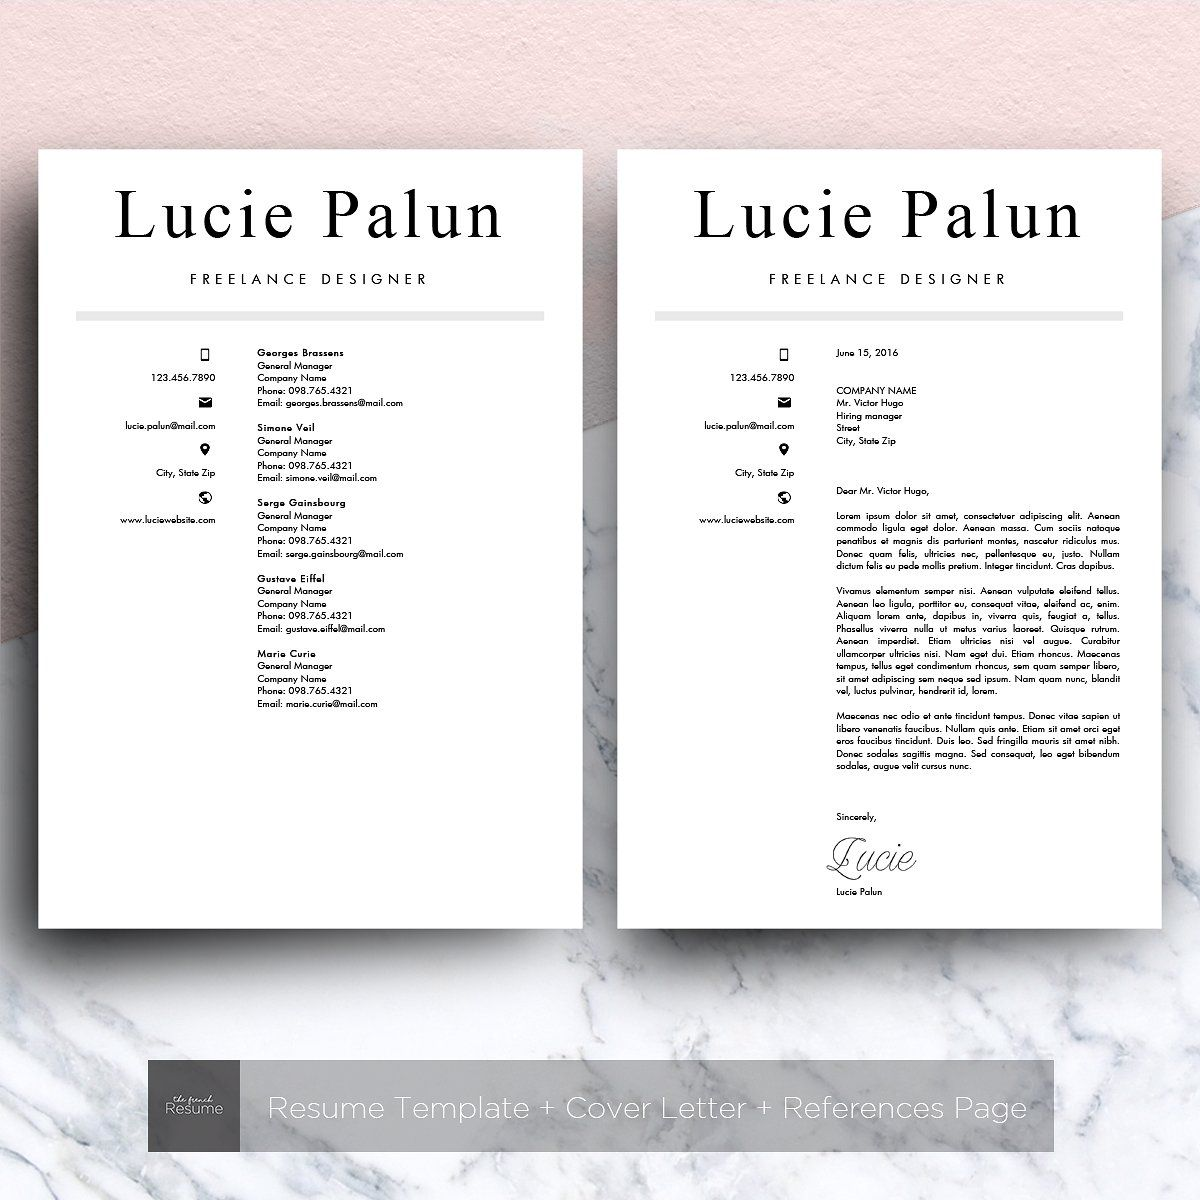 Modern CV (MS Word) | Lucie by The.French.Resume on @creativemarket ...